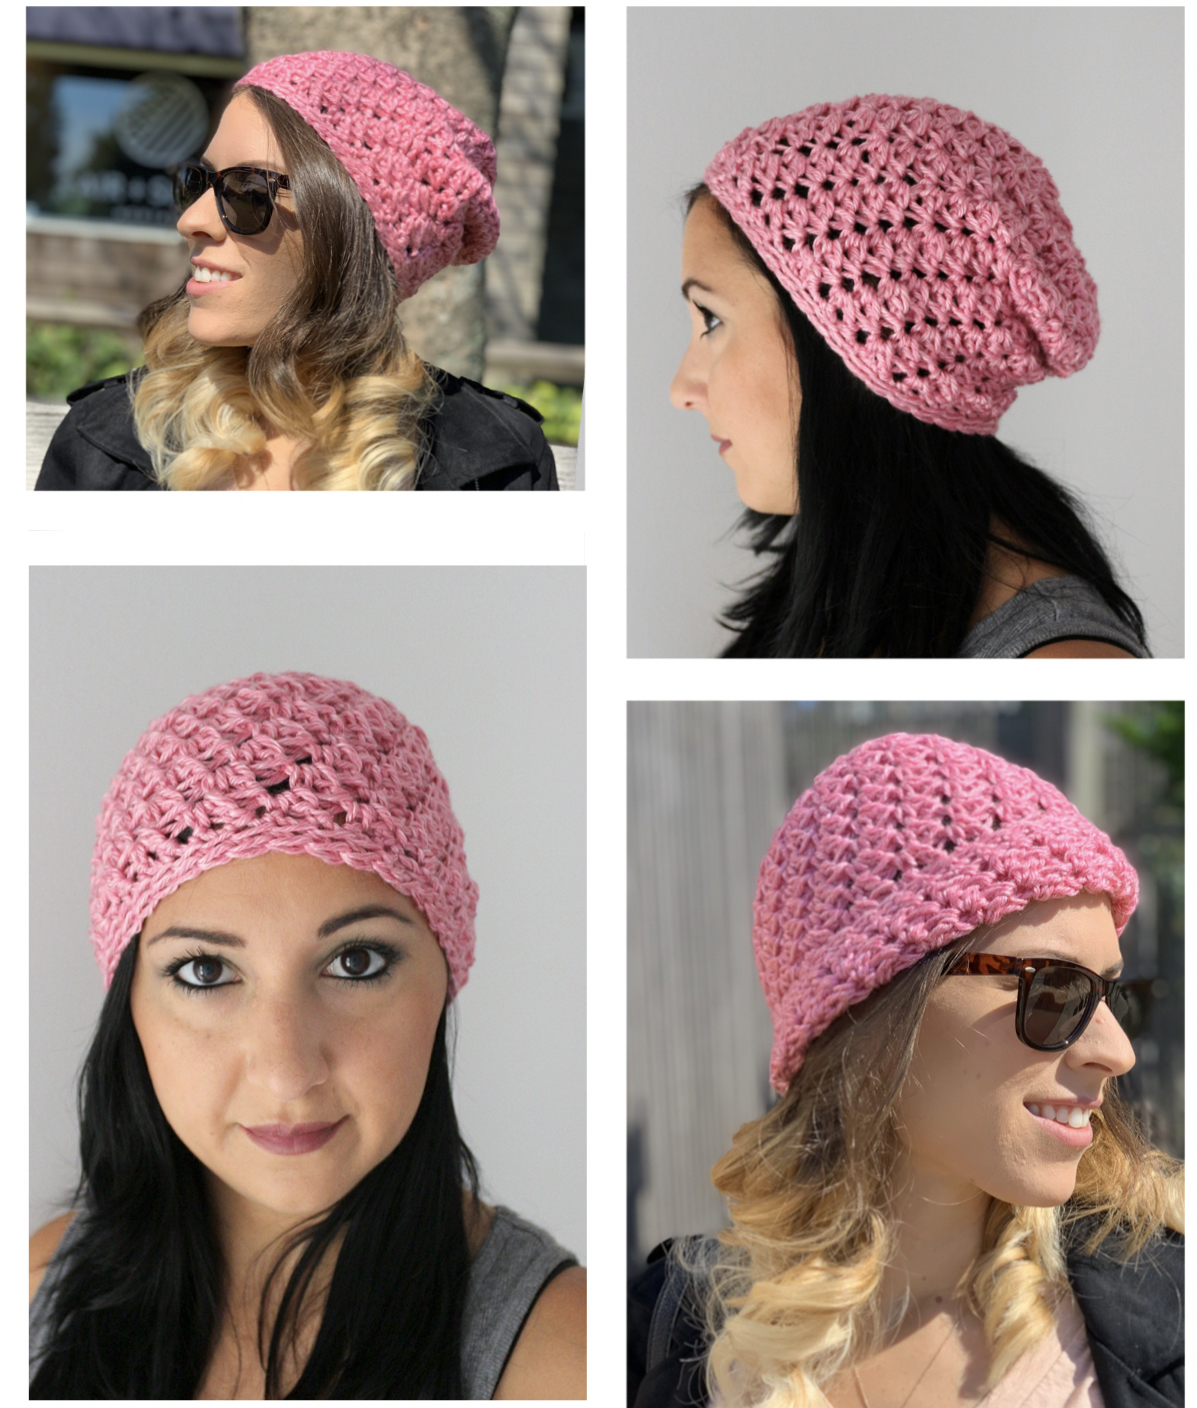 a73854ae621 GET YOUR CROCHET   KNIT ON! — Stitch   Hustle